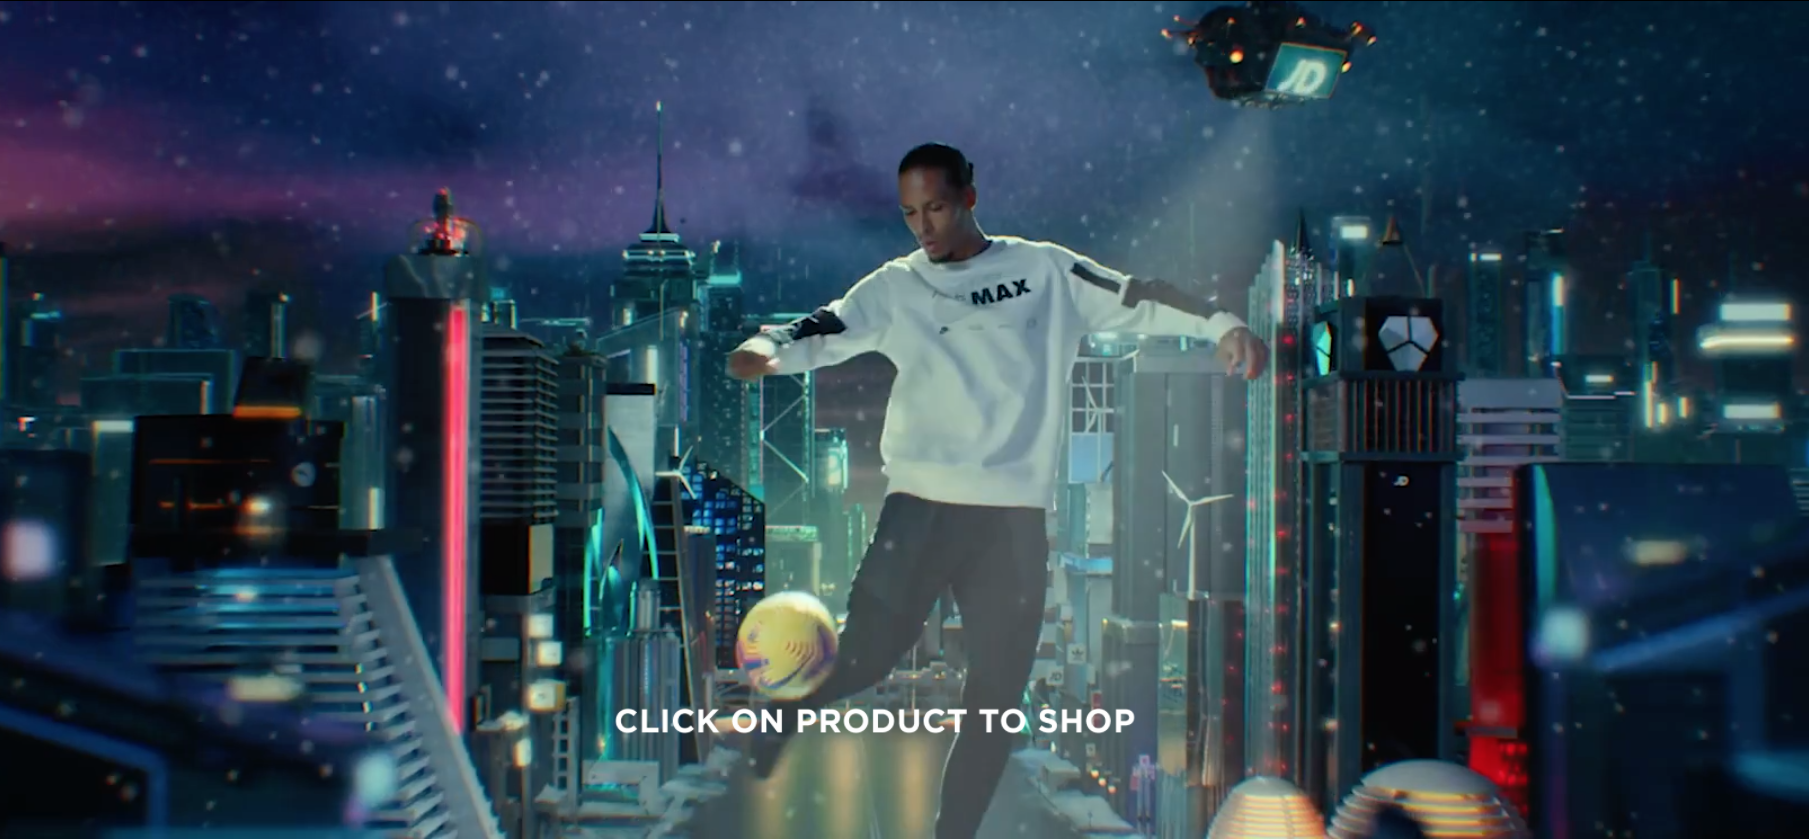 JD Sports Christmas Advert 2020 - credit to Chase Films and Elizabeth Melinek